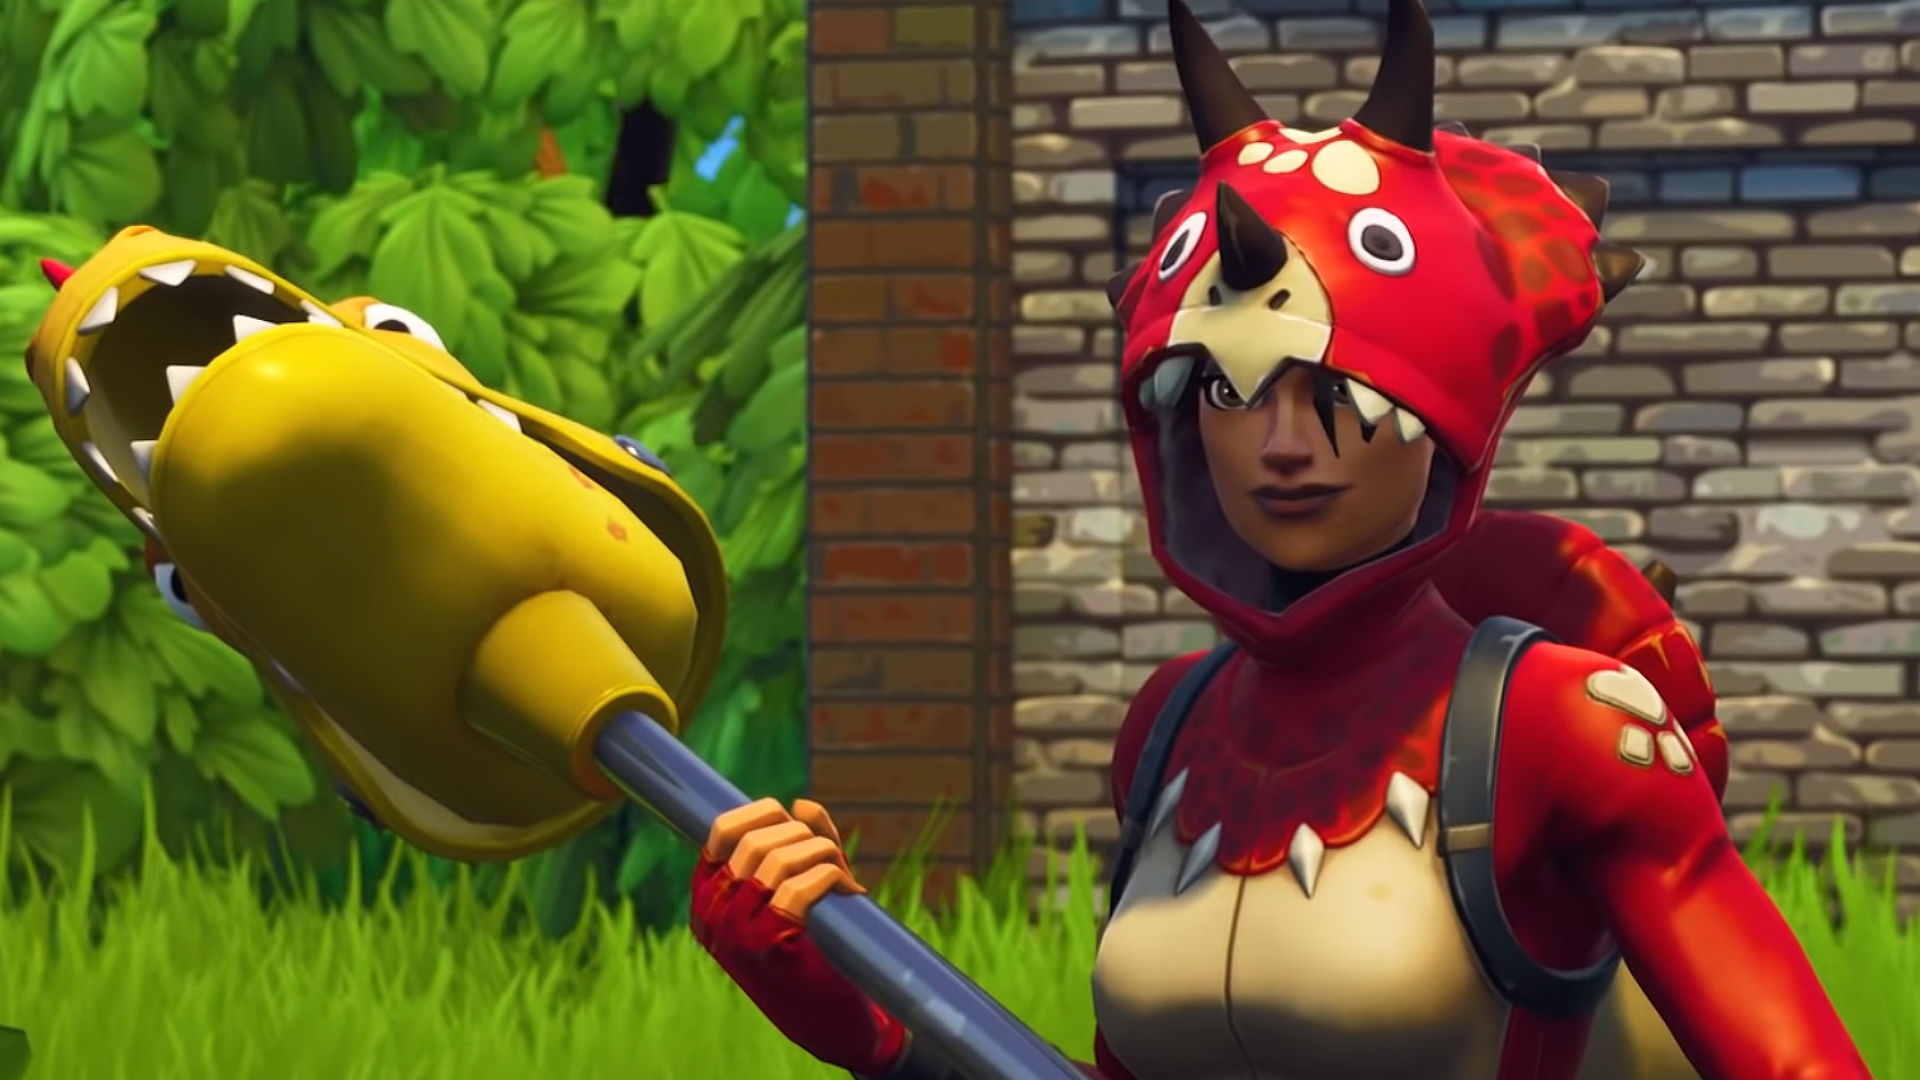 Best Fortnite Skins Ranked The Finest From The Fortnite Item Shop Pcgamesn